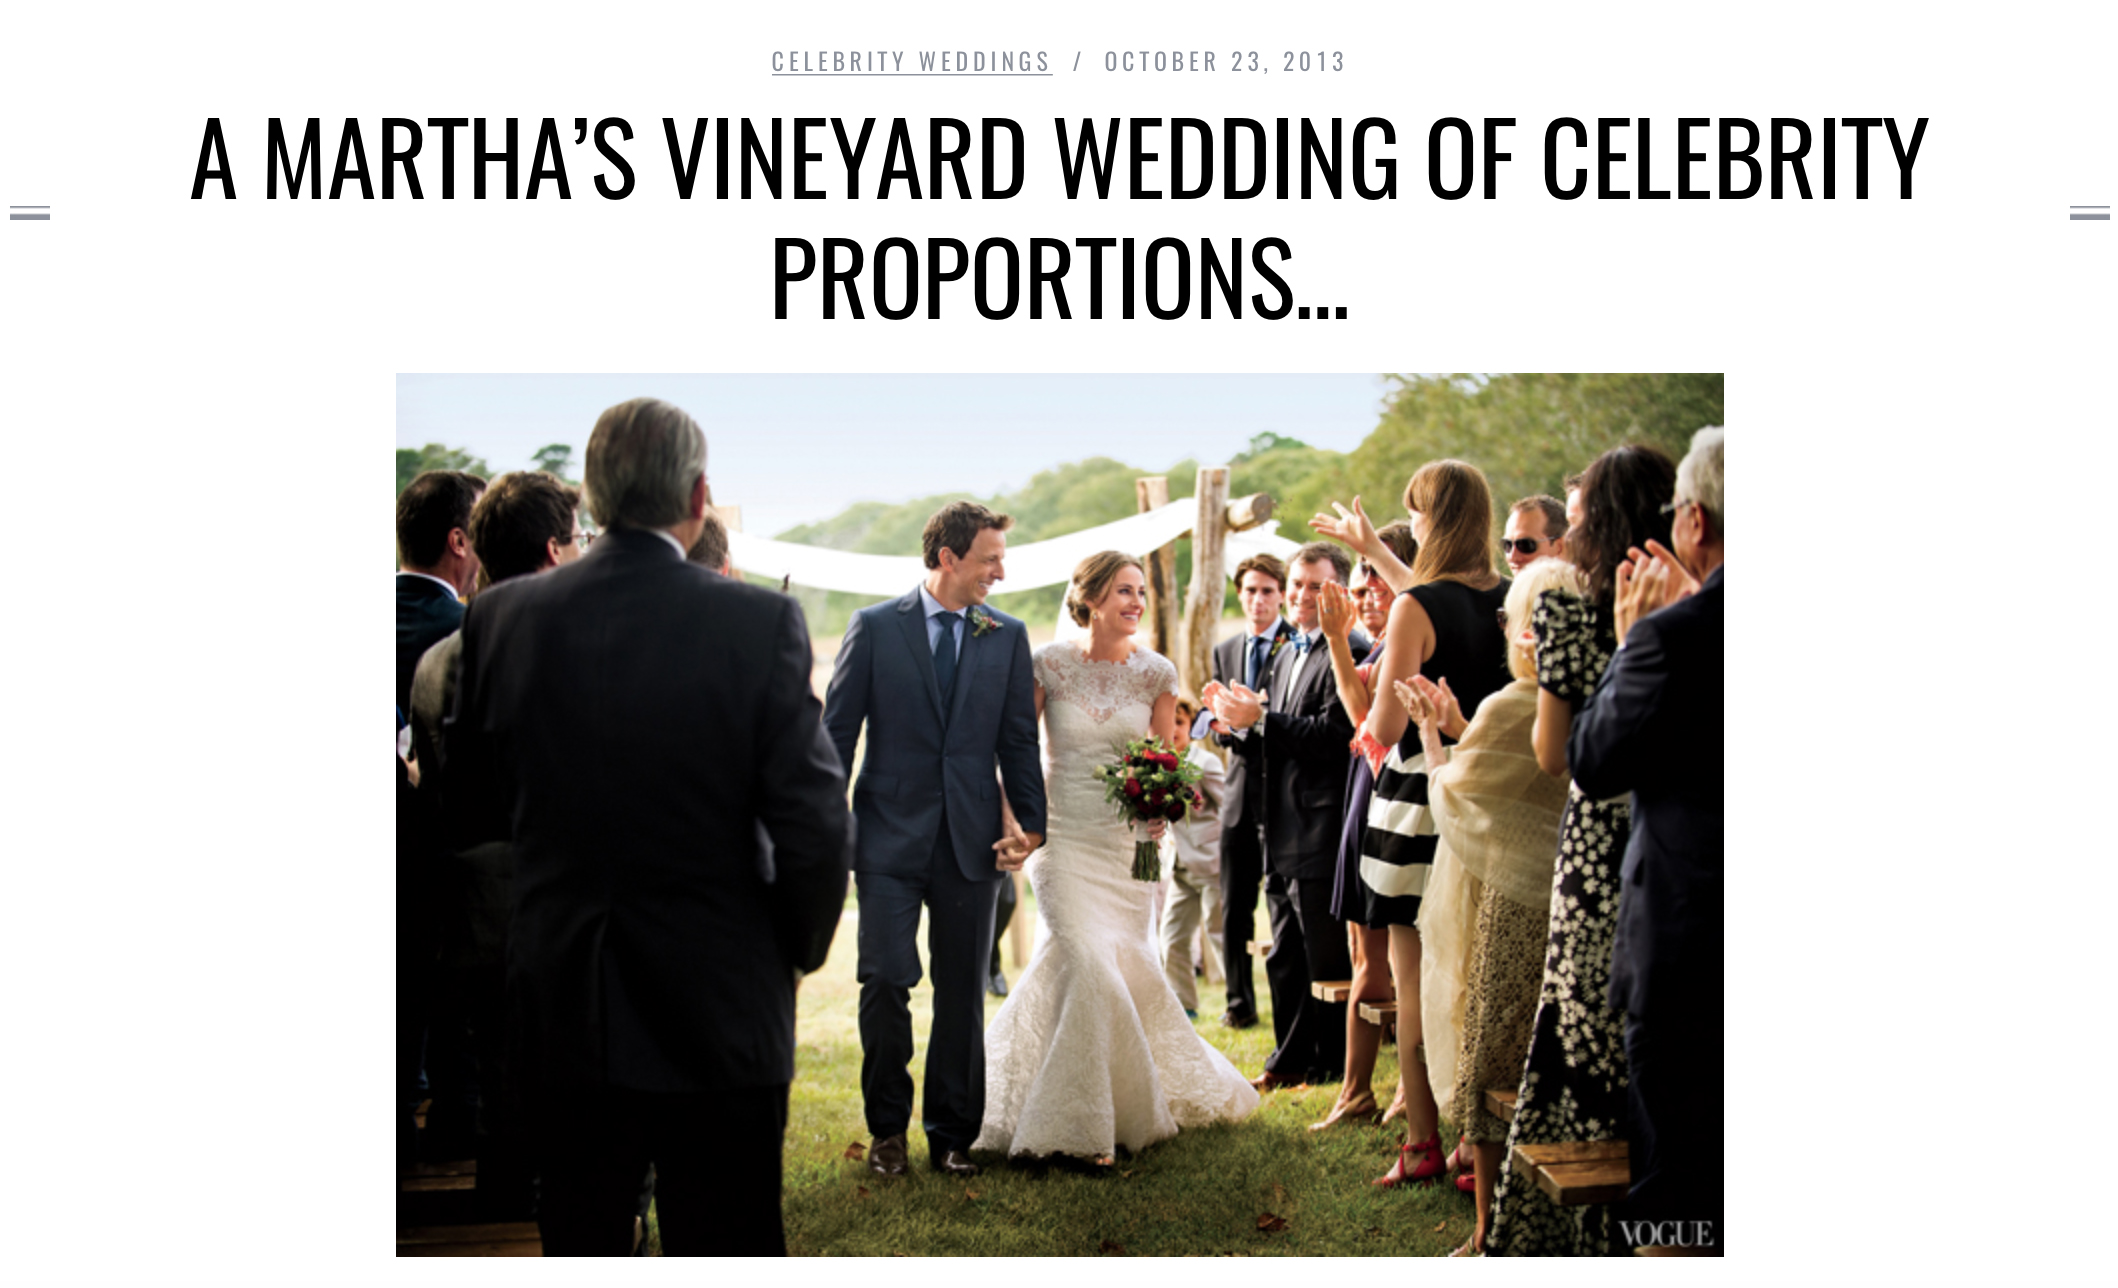 - Southern New England Weddings ran a story featuring our photos of Seth Meyer's wedding to Alexi Ashe. You can find those here.